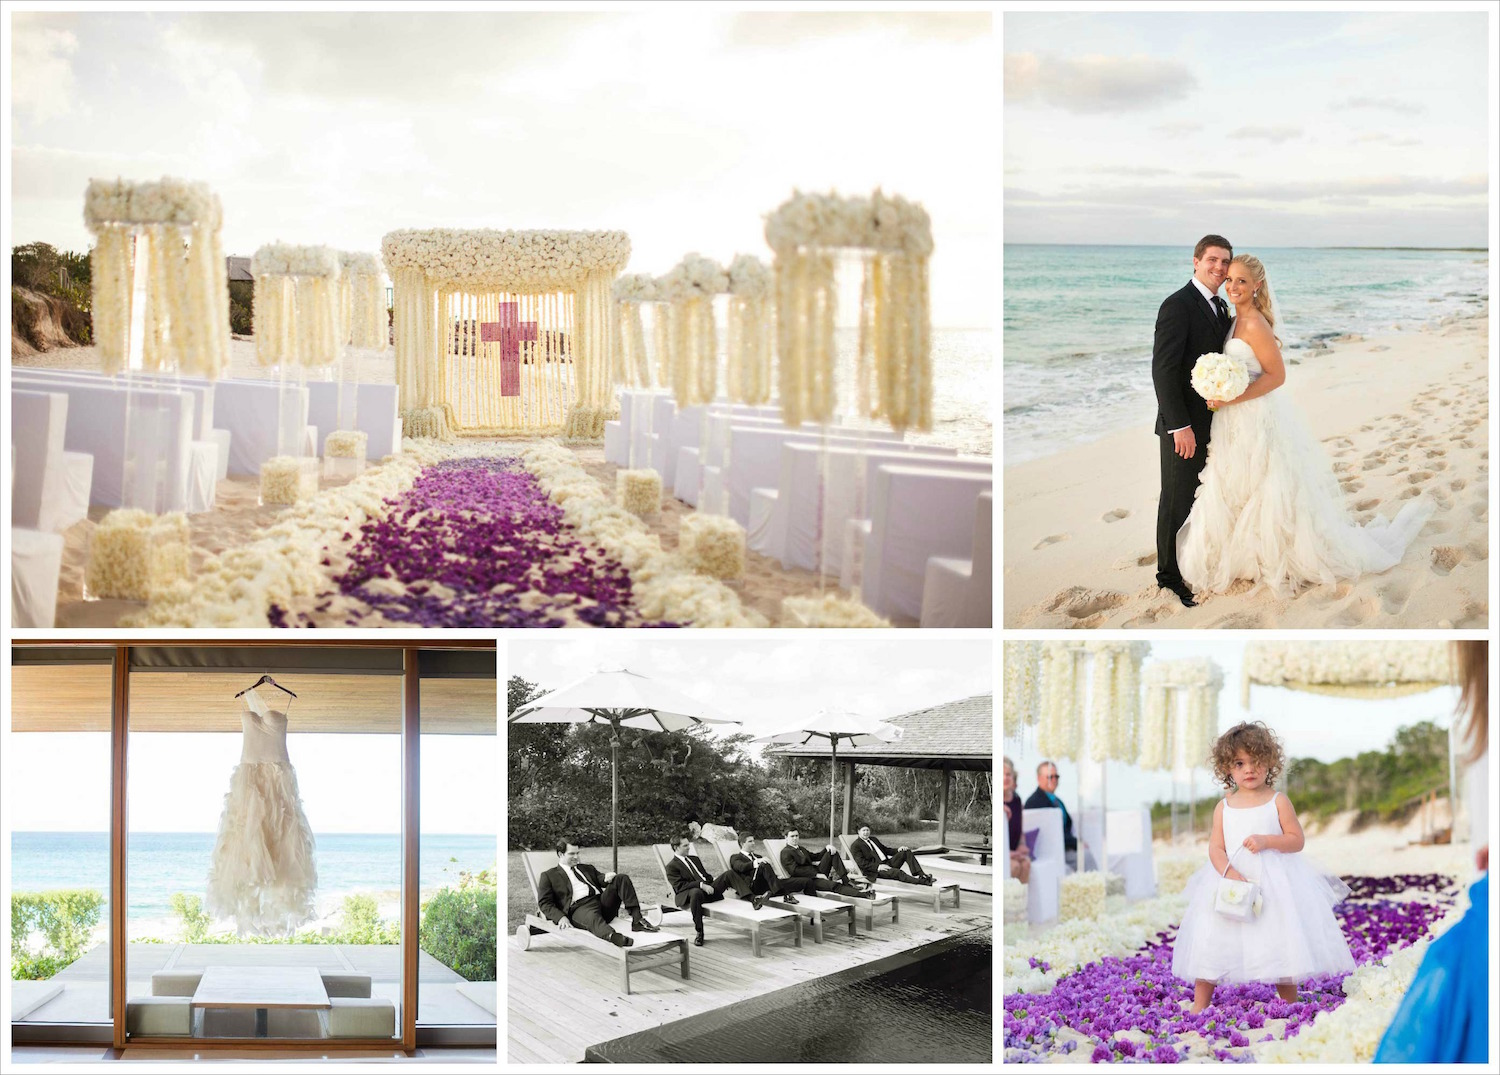 Destination wedding ideas 10 real wedding locations for Destination wedding location ideas